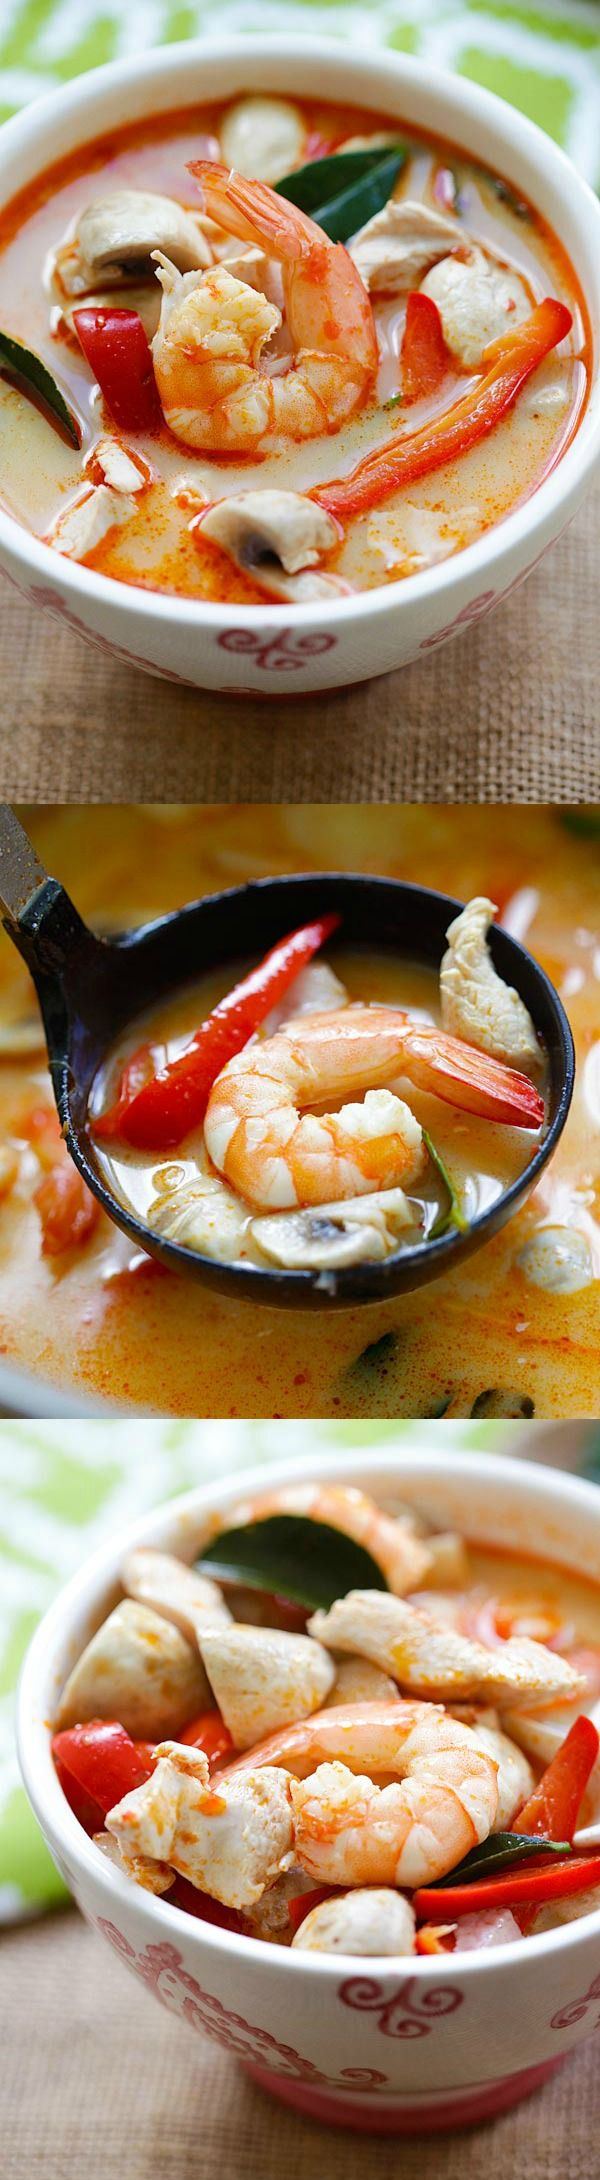 Thai Coconut Chicken and Shrimp Soup – the best soup you'll ever make in your kitchen. This soup is to-die-for, better than Thai takeout!   rasamalaysia.com